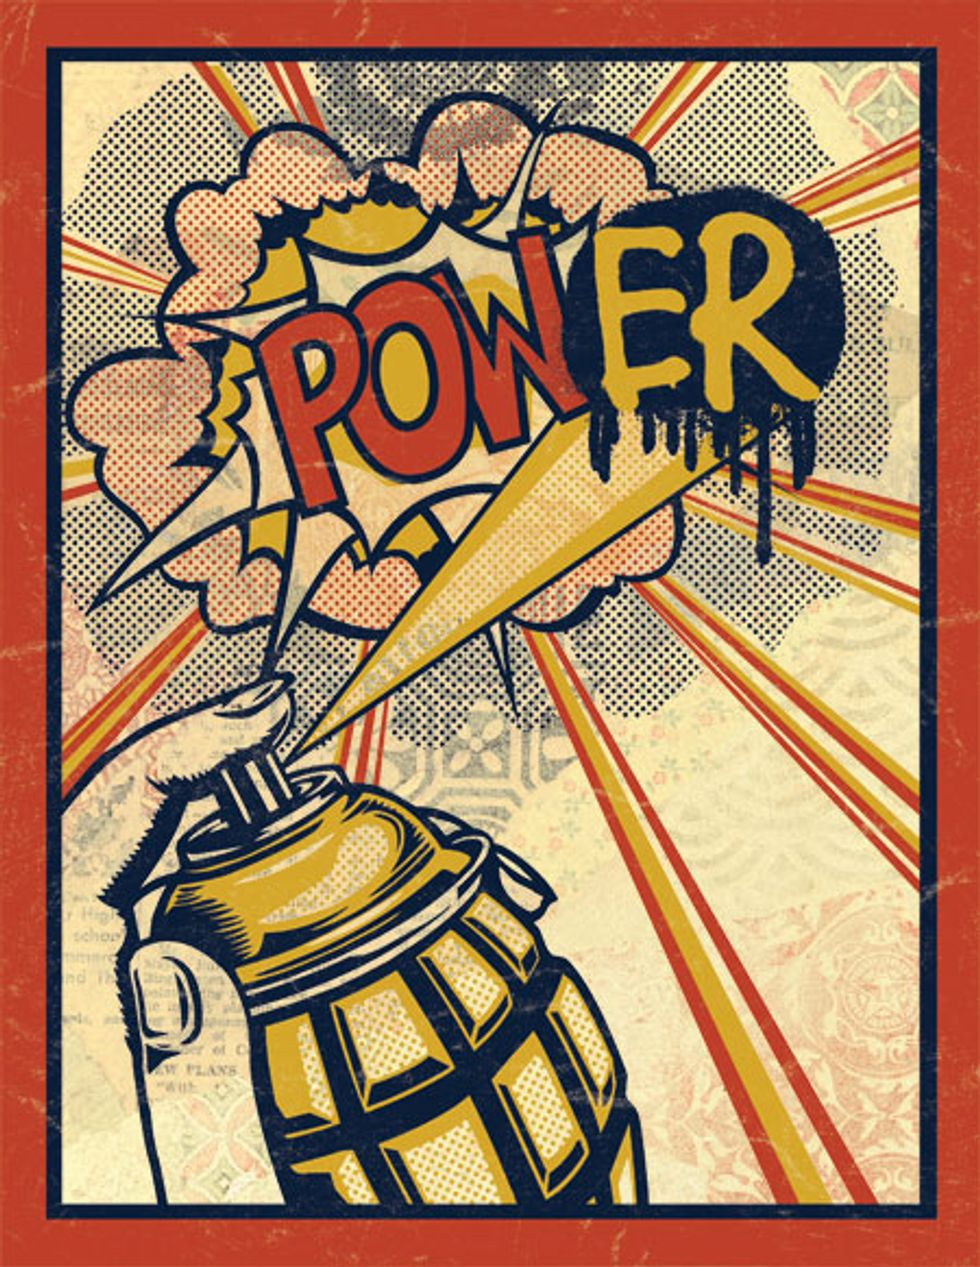 Shepard Fairey's POW(ER) to the People